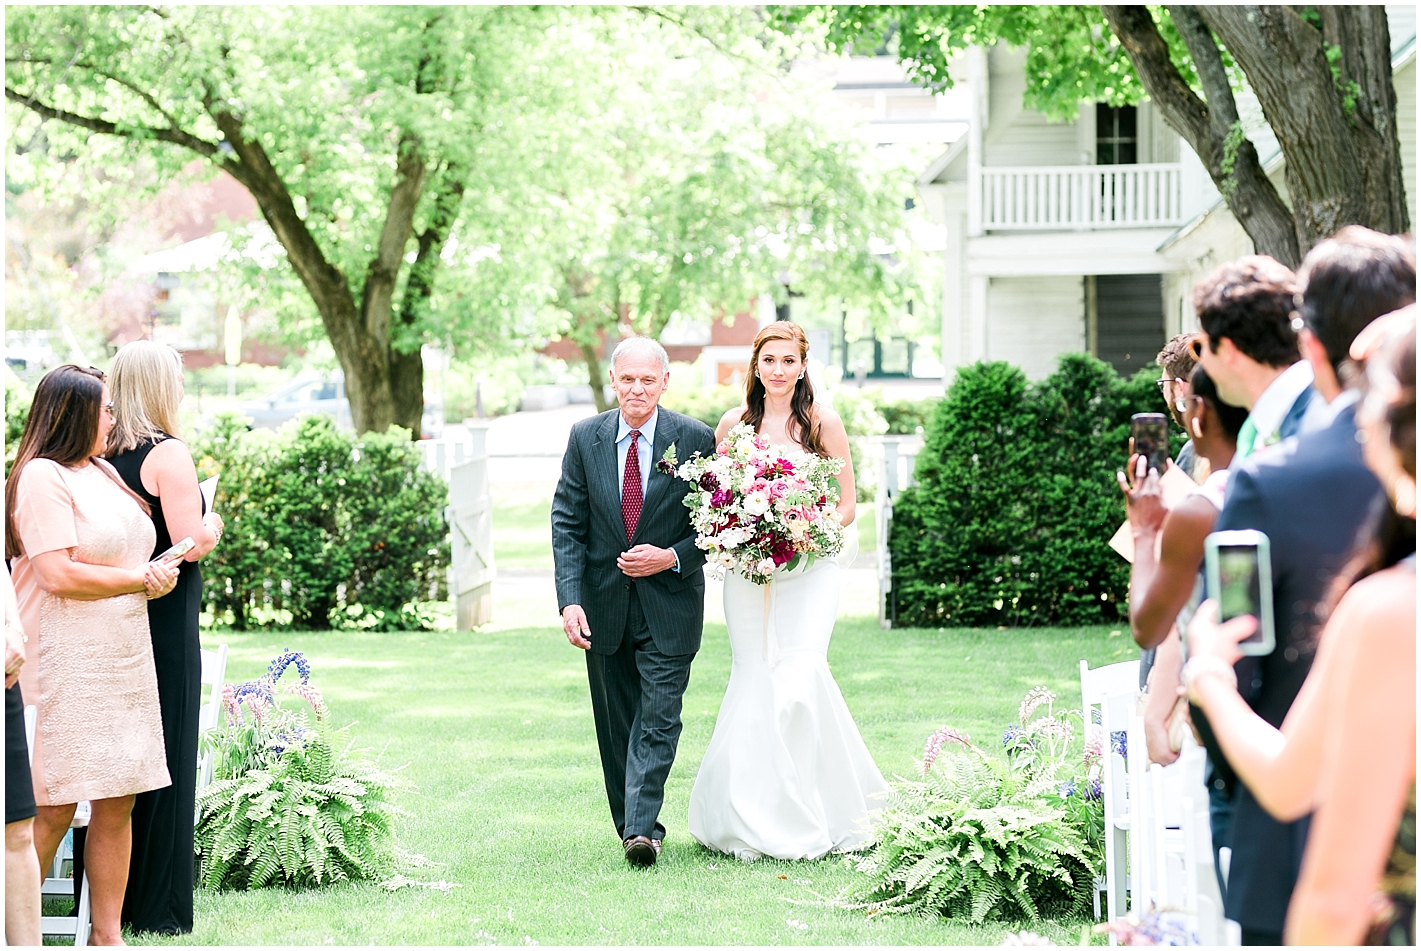 Beautiful Summer ceremony at Woodstock Inn Vermont Photos by Alyssa Parker Photography